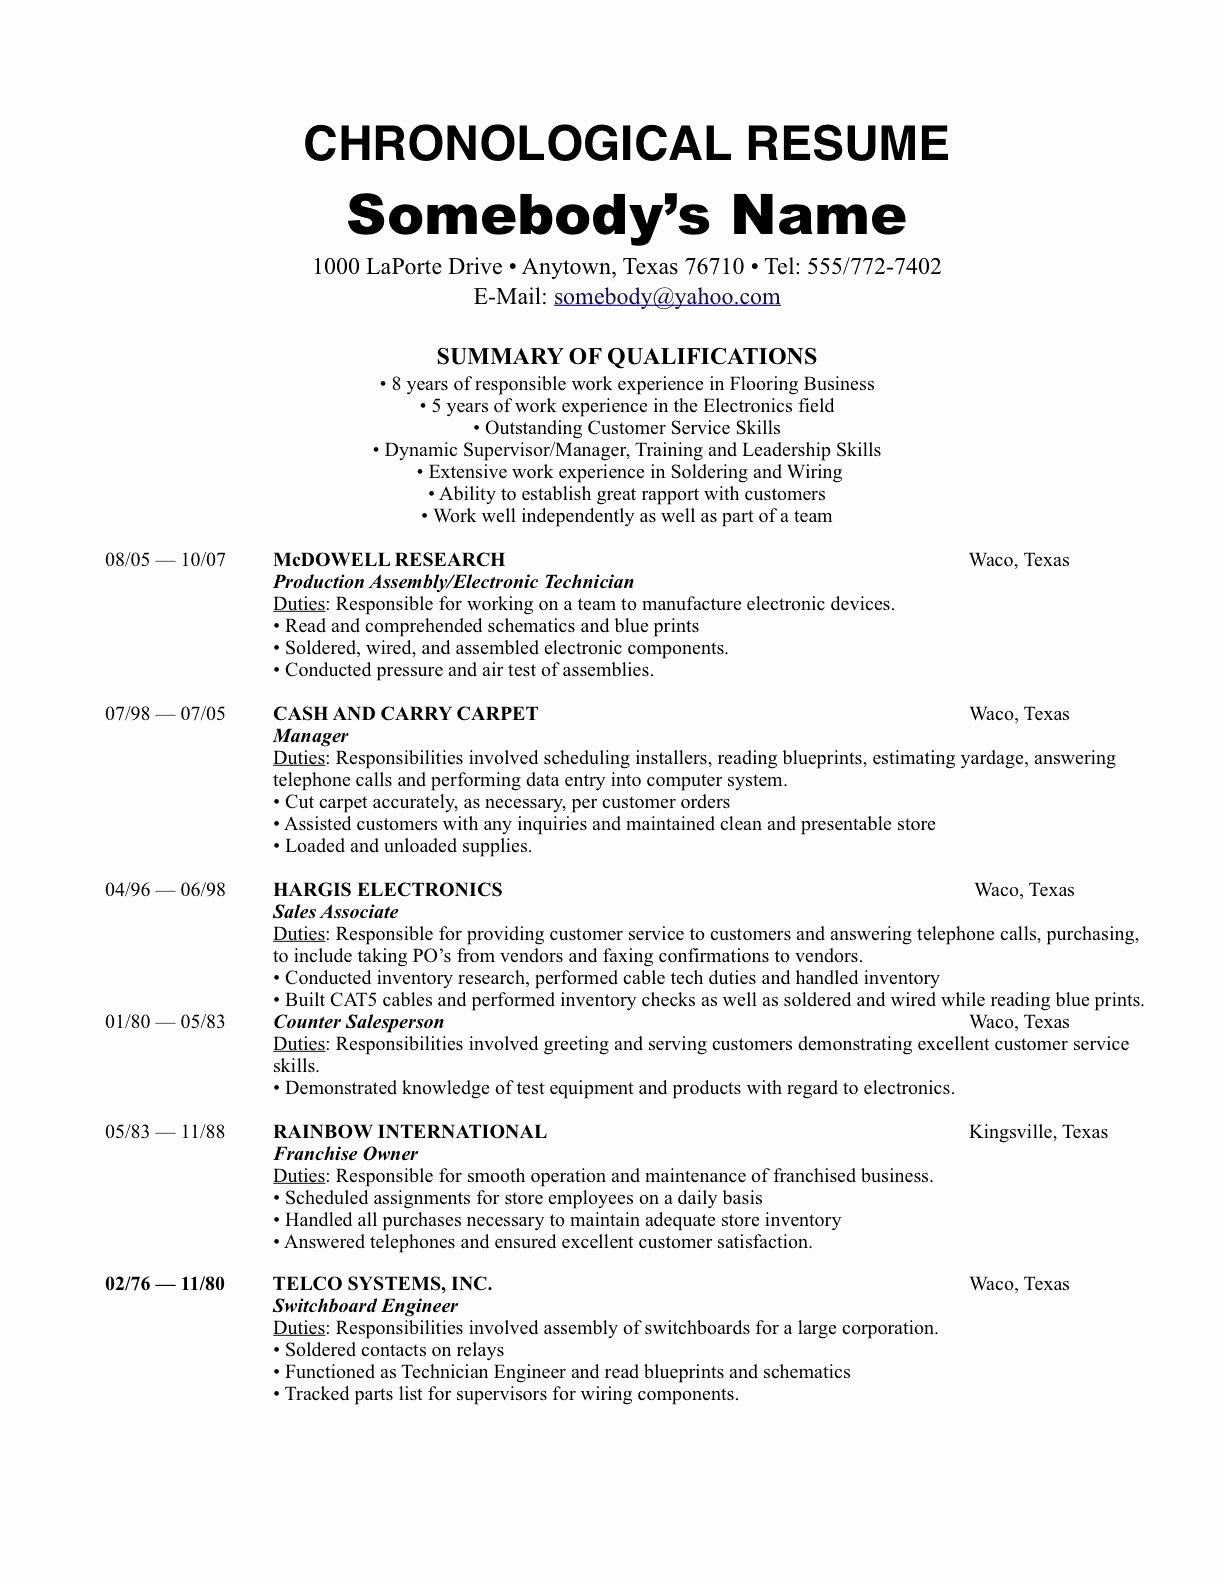 Reverse Chronological Resume Template Luxury Chronological order Resume Example Dc0364f86 the Most